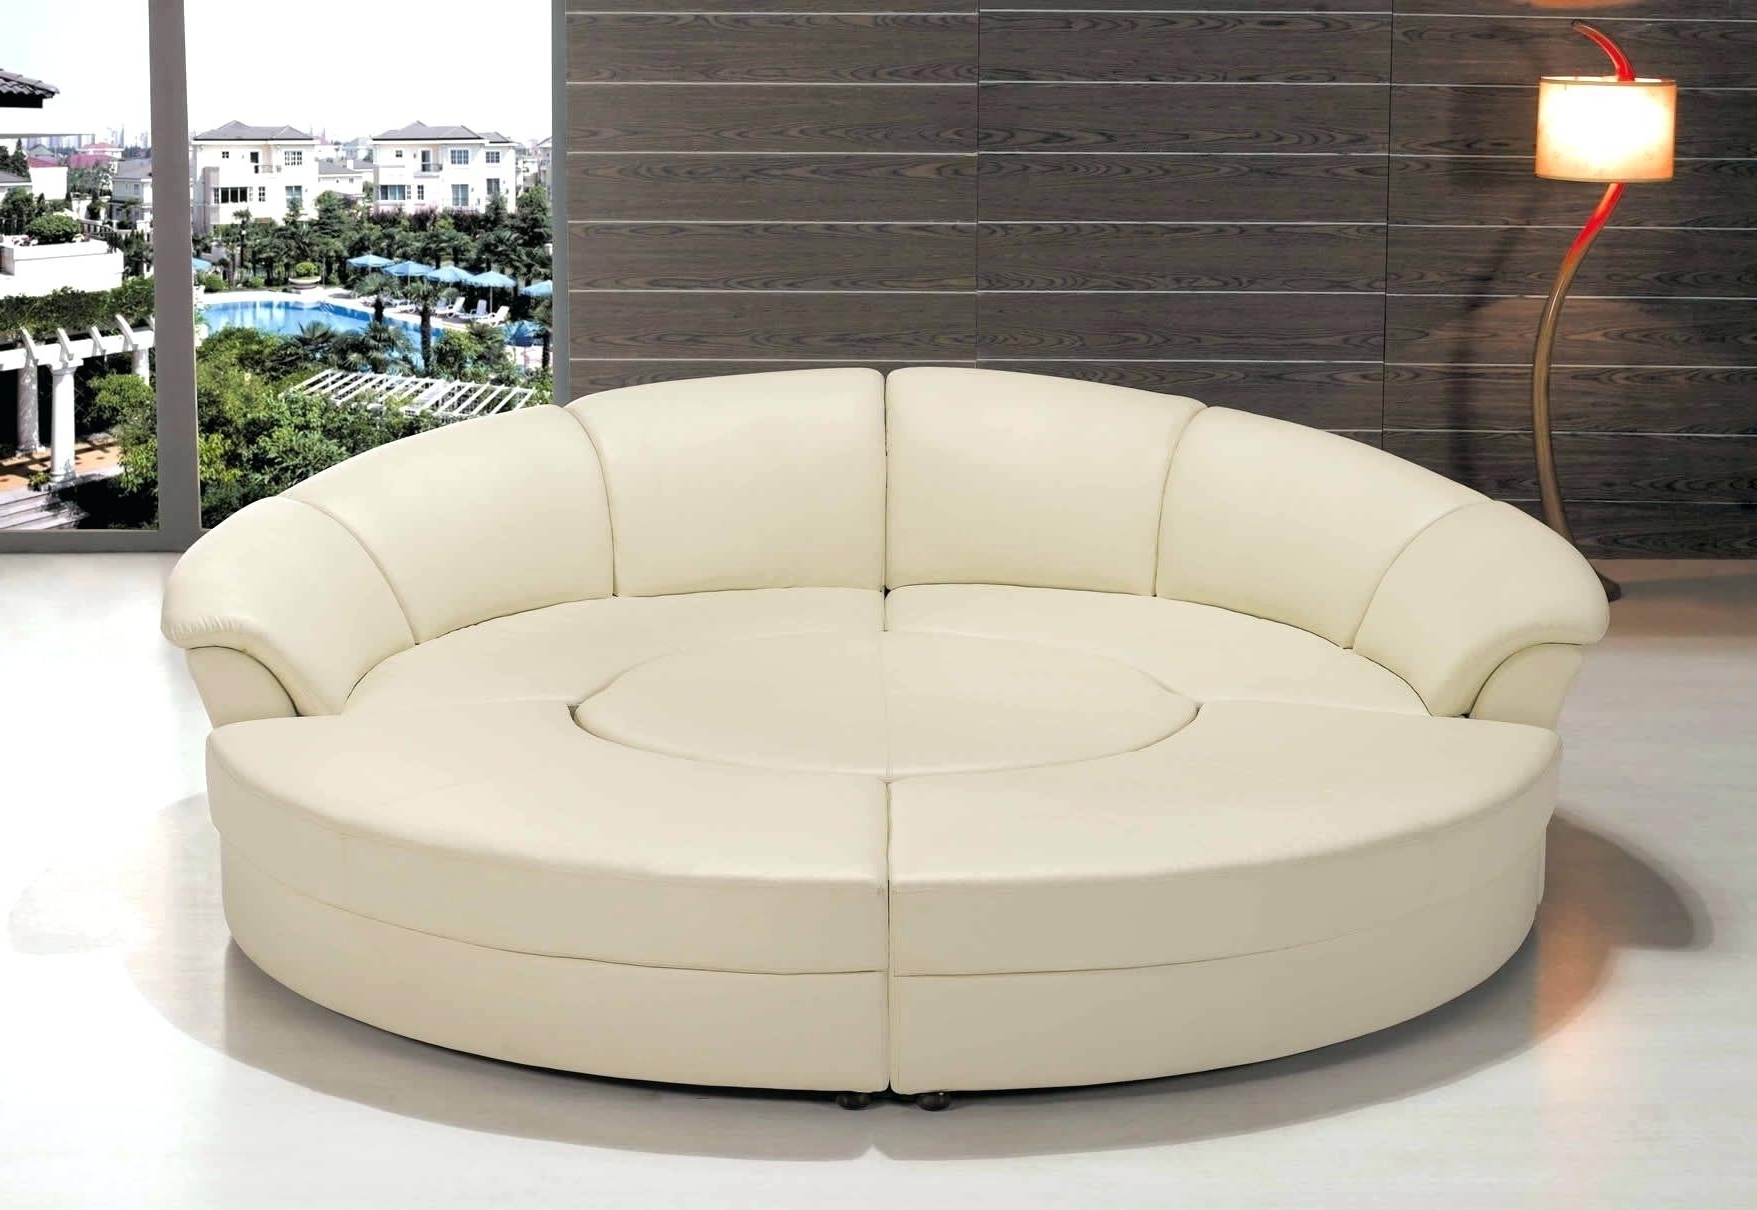 Recent Furniture : Round Sectional Sofa Covers New Round Sofa Covers Pertaining To Rounded Sofas (View 14 of 20)